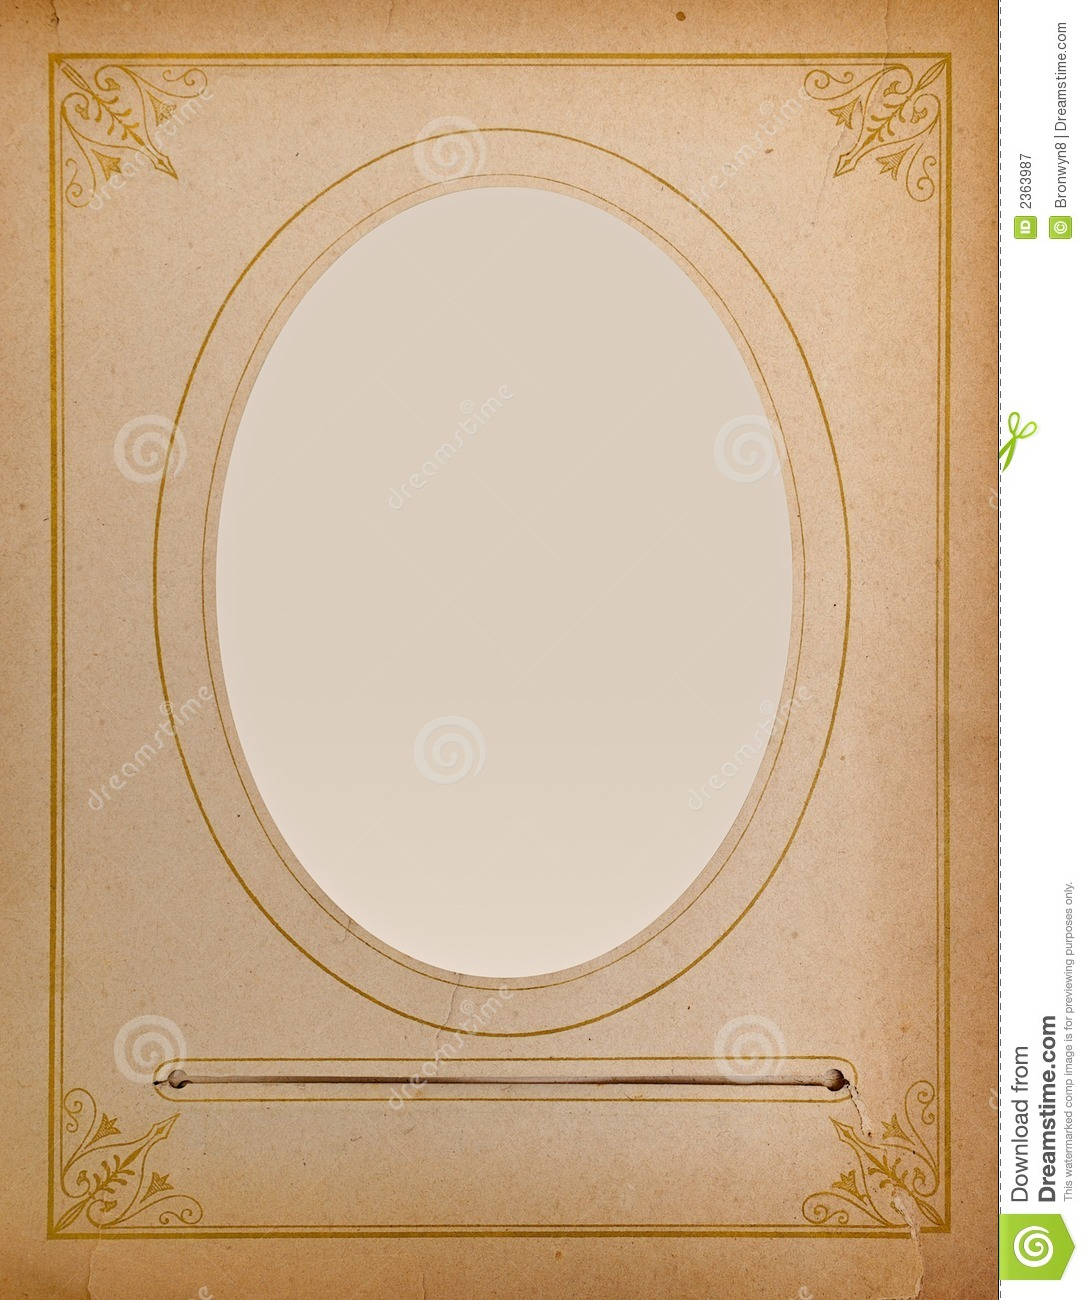 Old-fashioned Portrait Frame Stock Image - Image of dirty, nostalgia ...